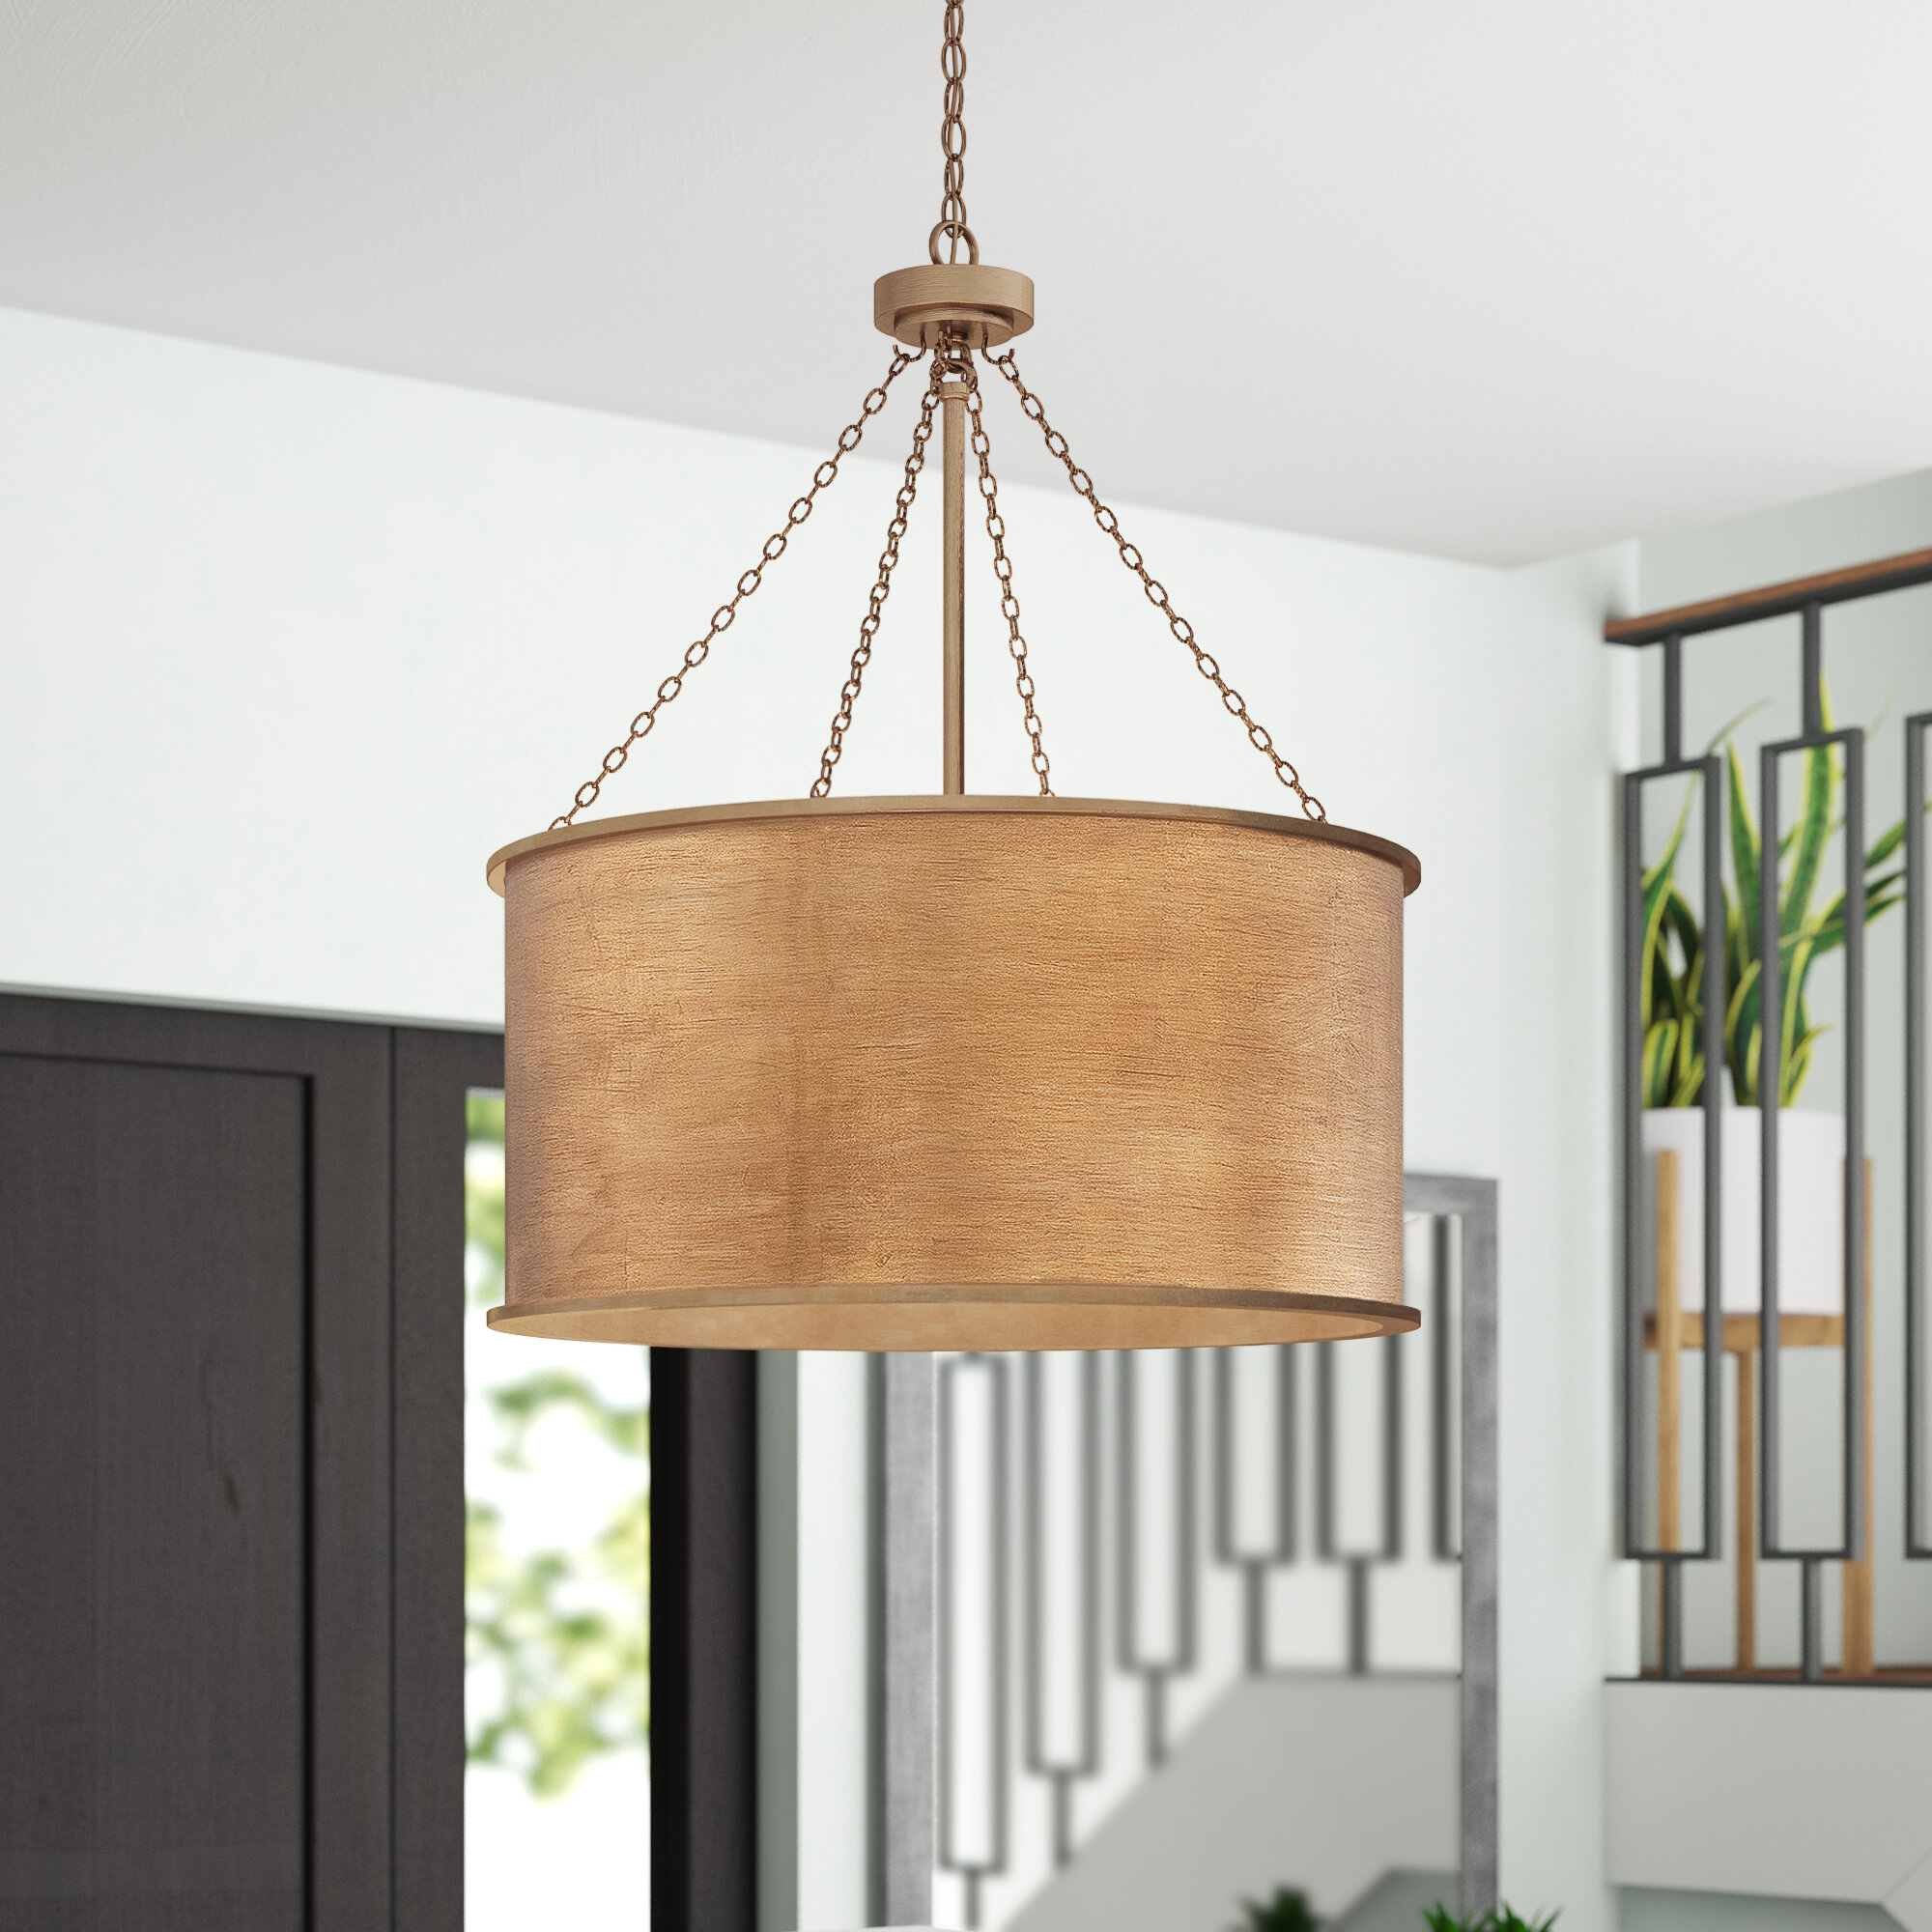 Cranston 4 Light Drum Chandelier Throughout Emaria 3 Light Single Drum Pendants (View 23 of 30)